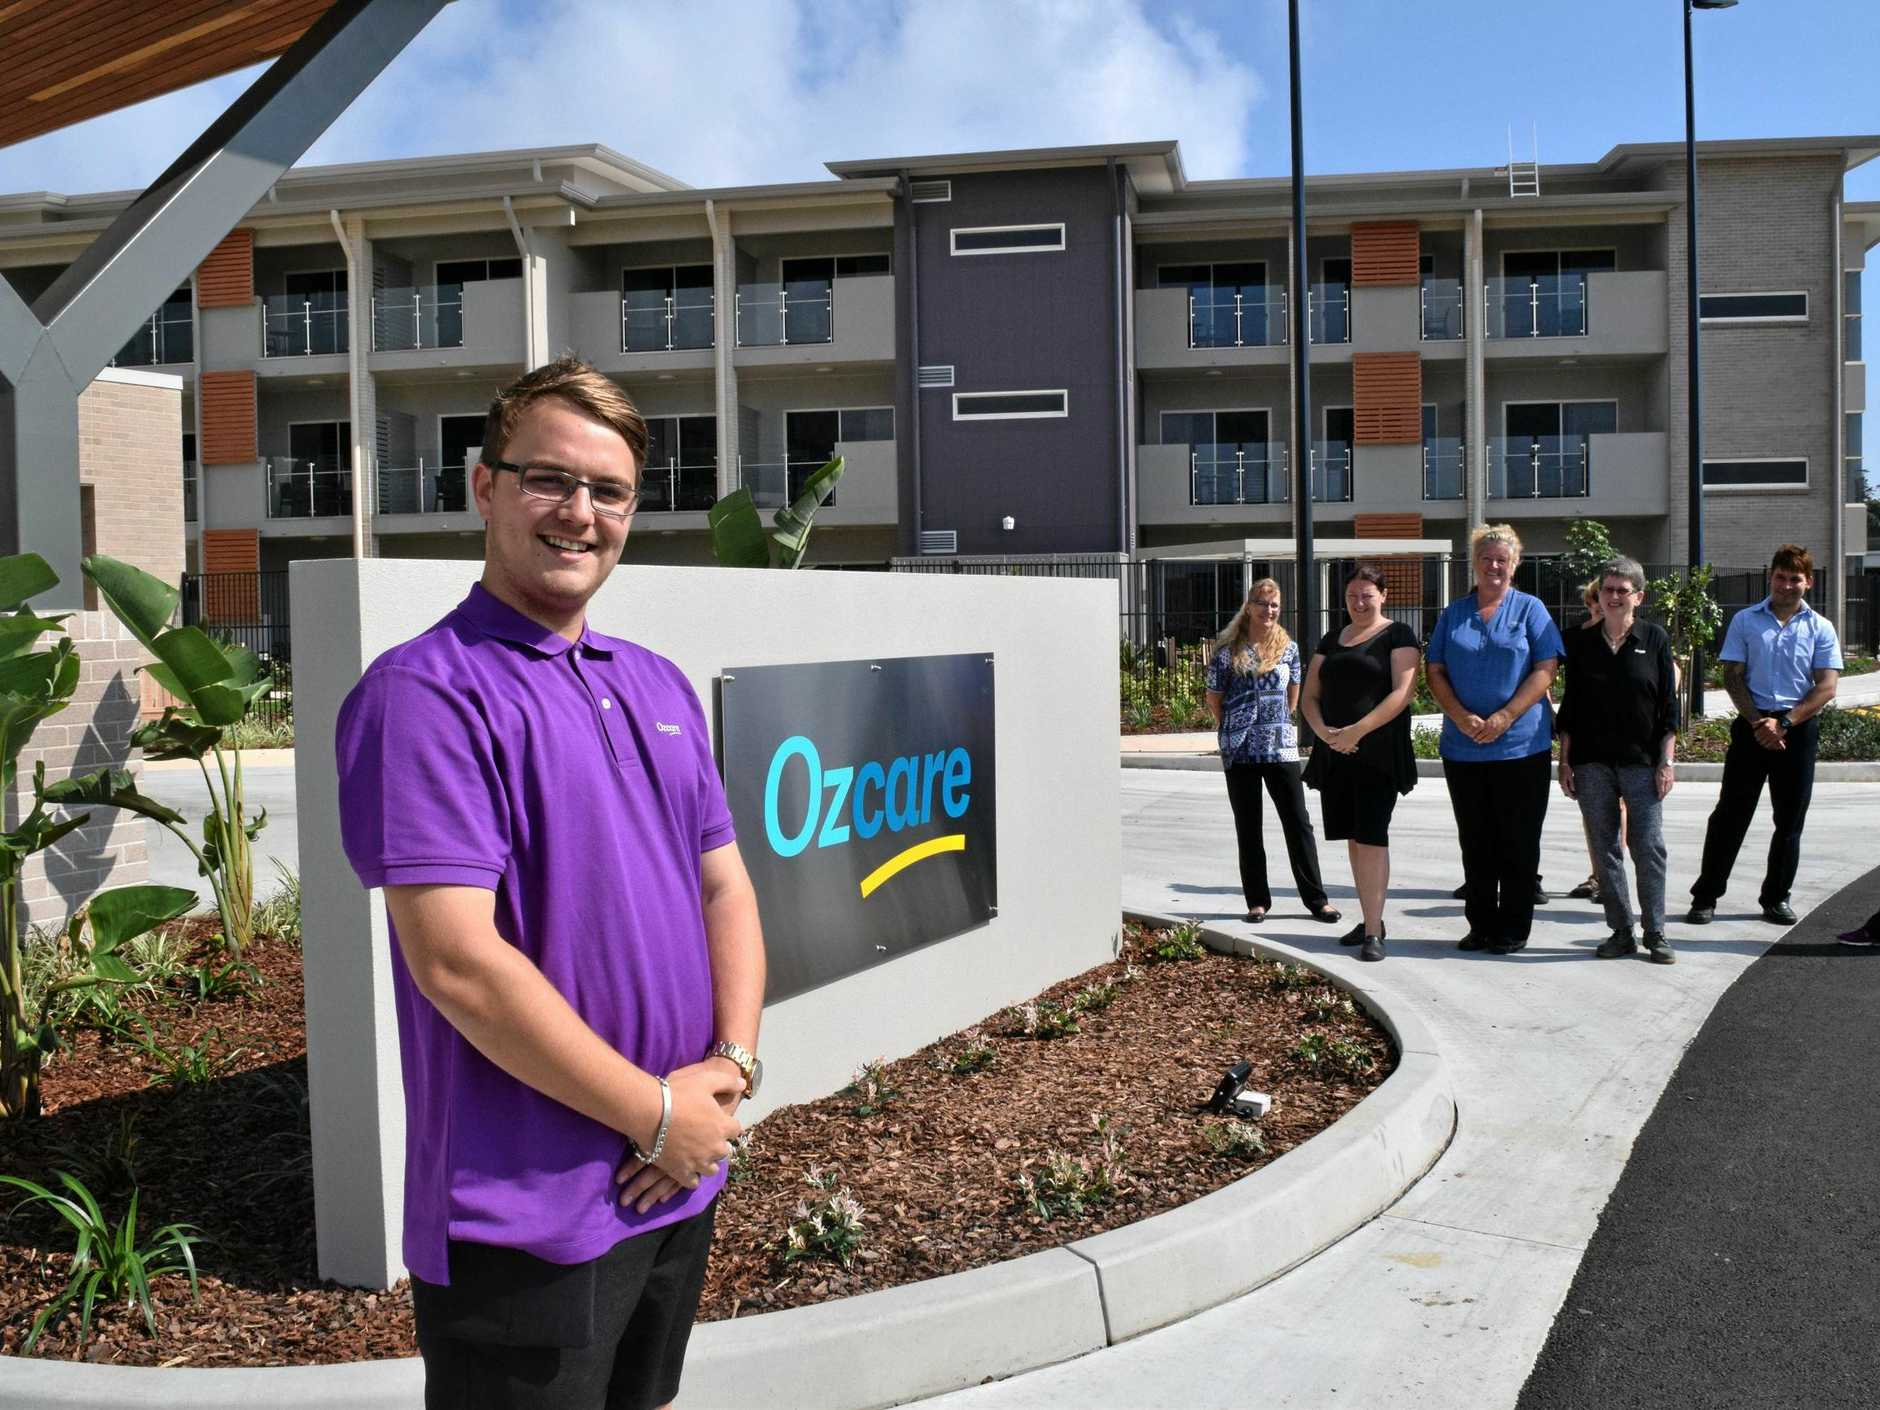 NEW STARTERS: Daniel Down (left) is one of the new registered nurses and therapists starting at the new OzCare Aged Care Facility in Kawungan. The centre will take patients from October 16.